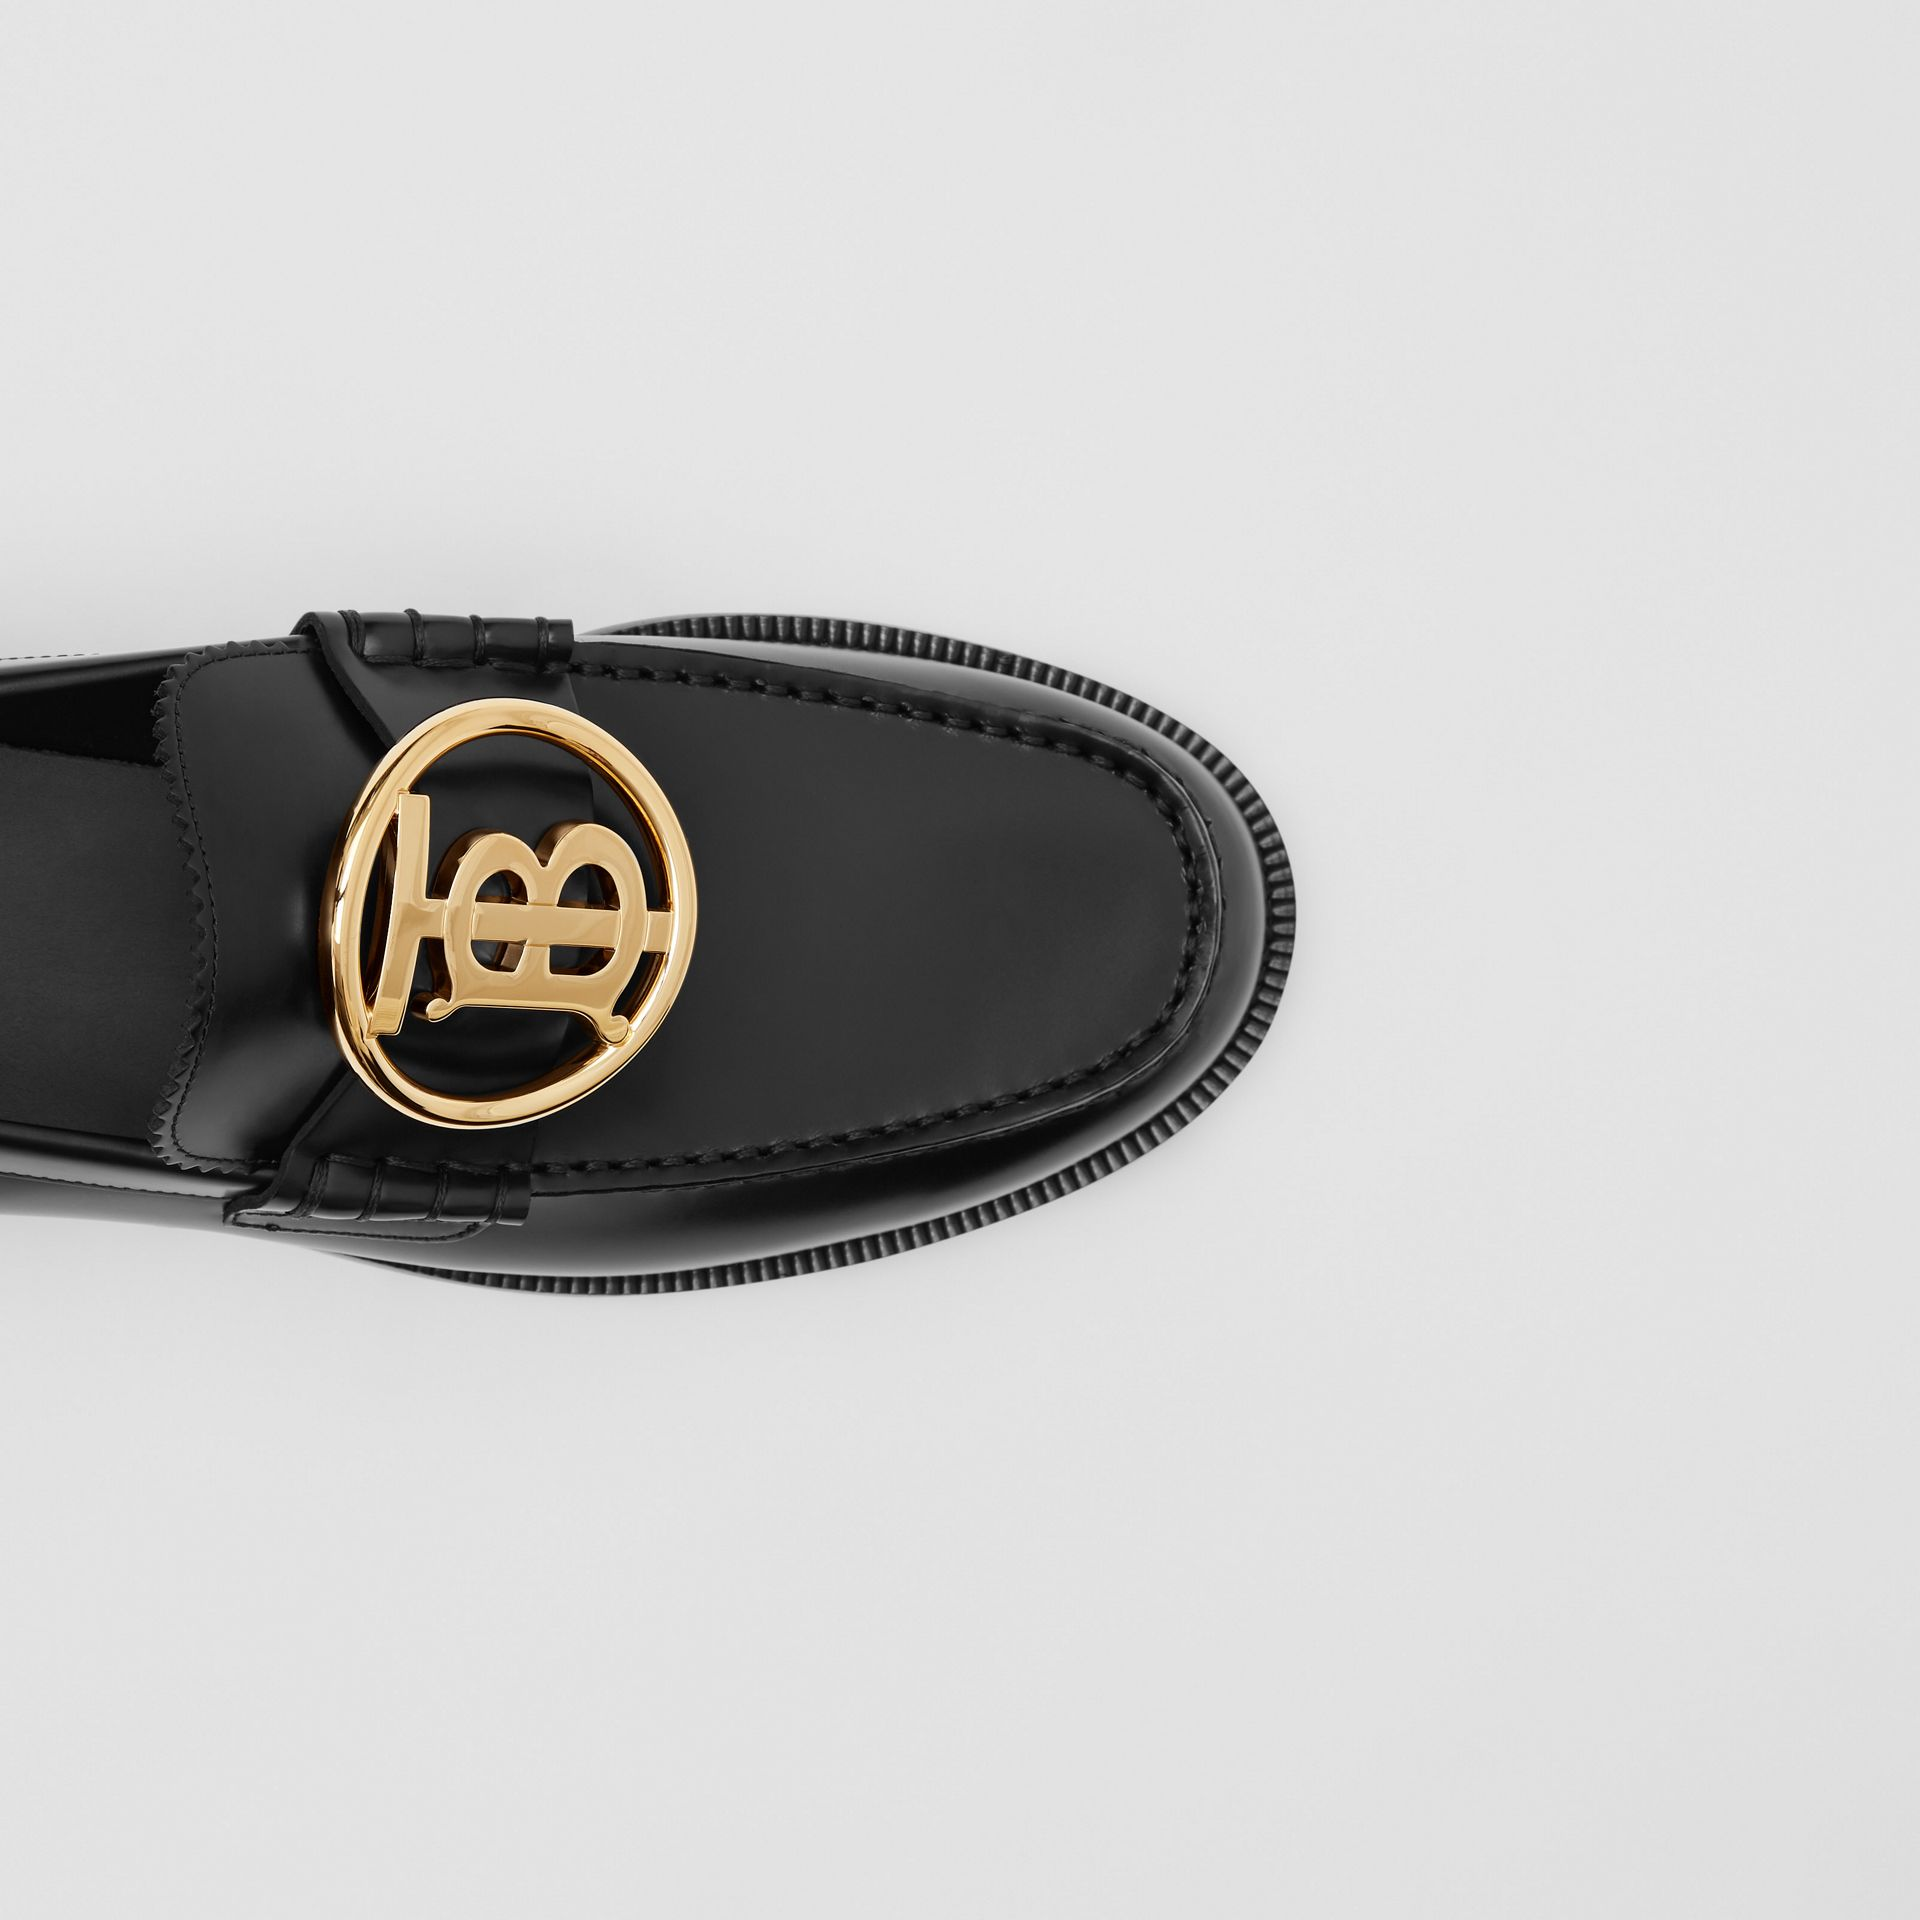 Monogram Motif Leather Loafers in Black - Men | Burberry - gallery image 1